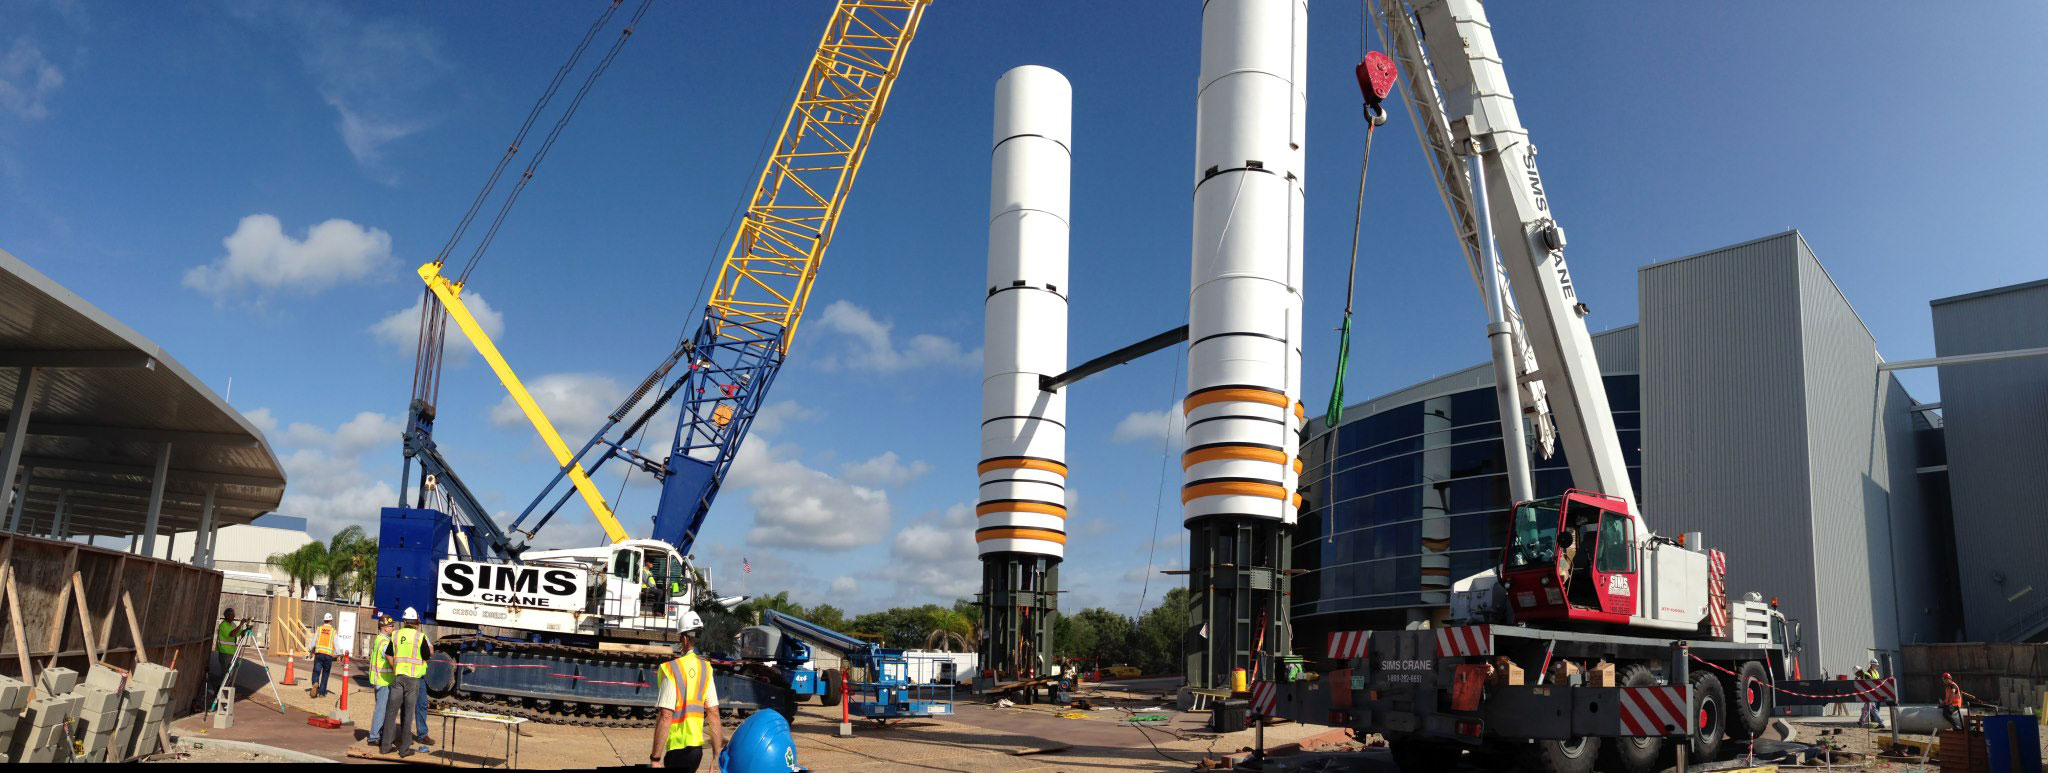 space shuttle solid rocket boster beams - photo #1